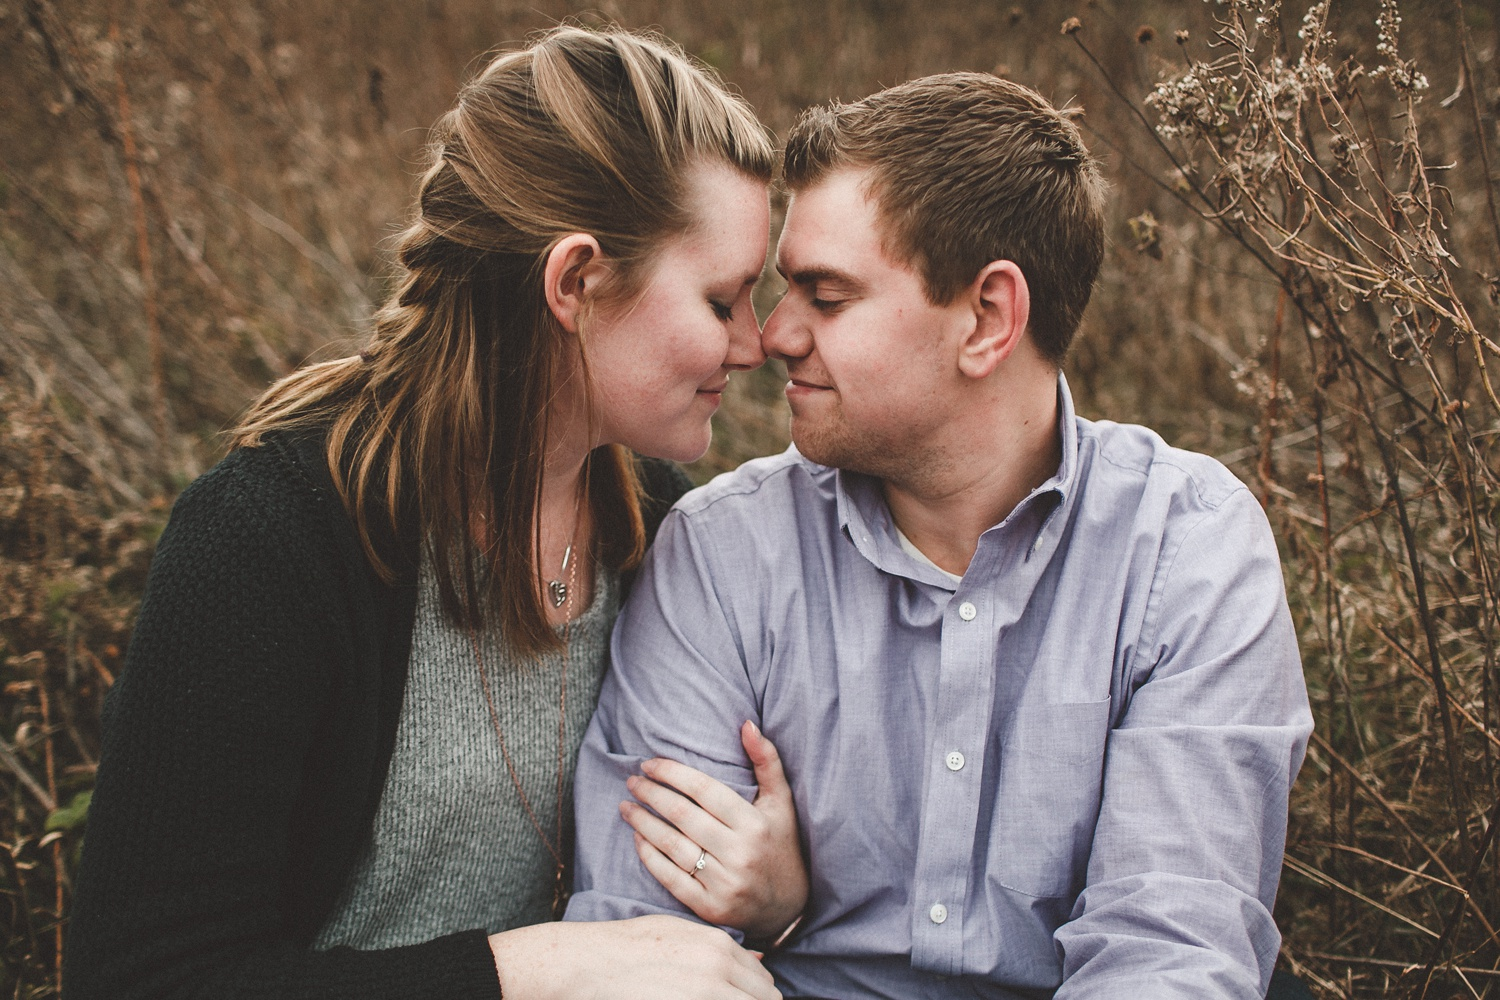 rock_cut_state_park_rockford_IL_engagement_photographer_0008.jpg